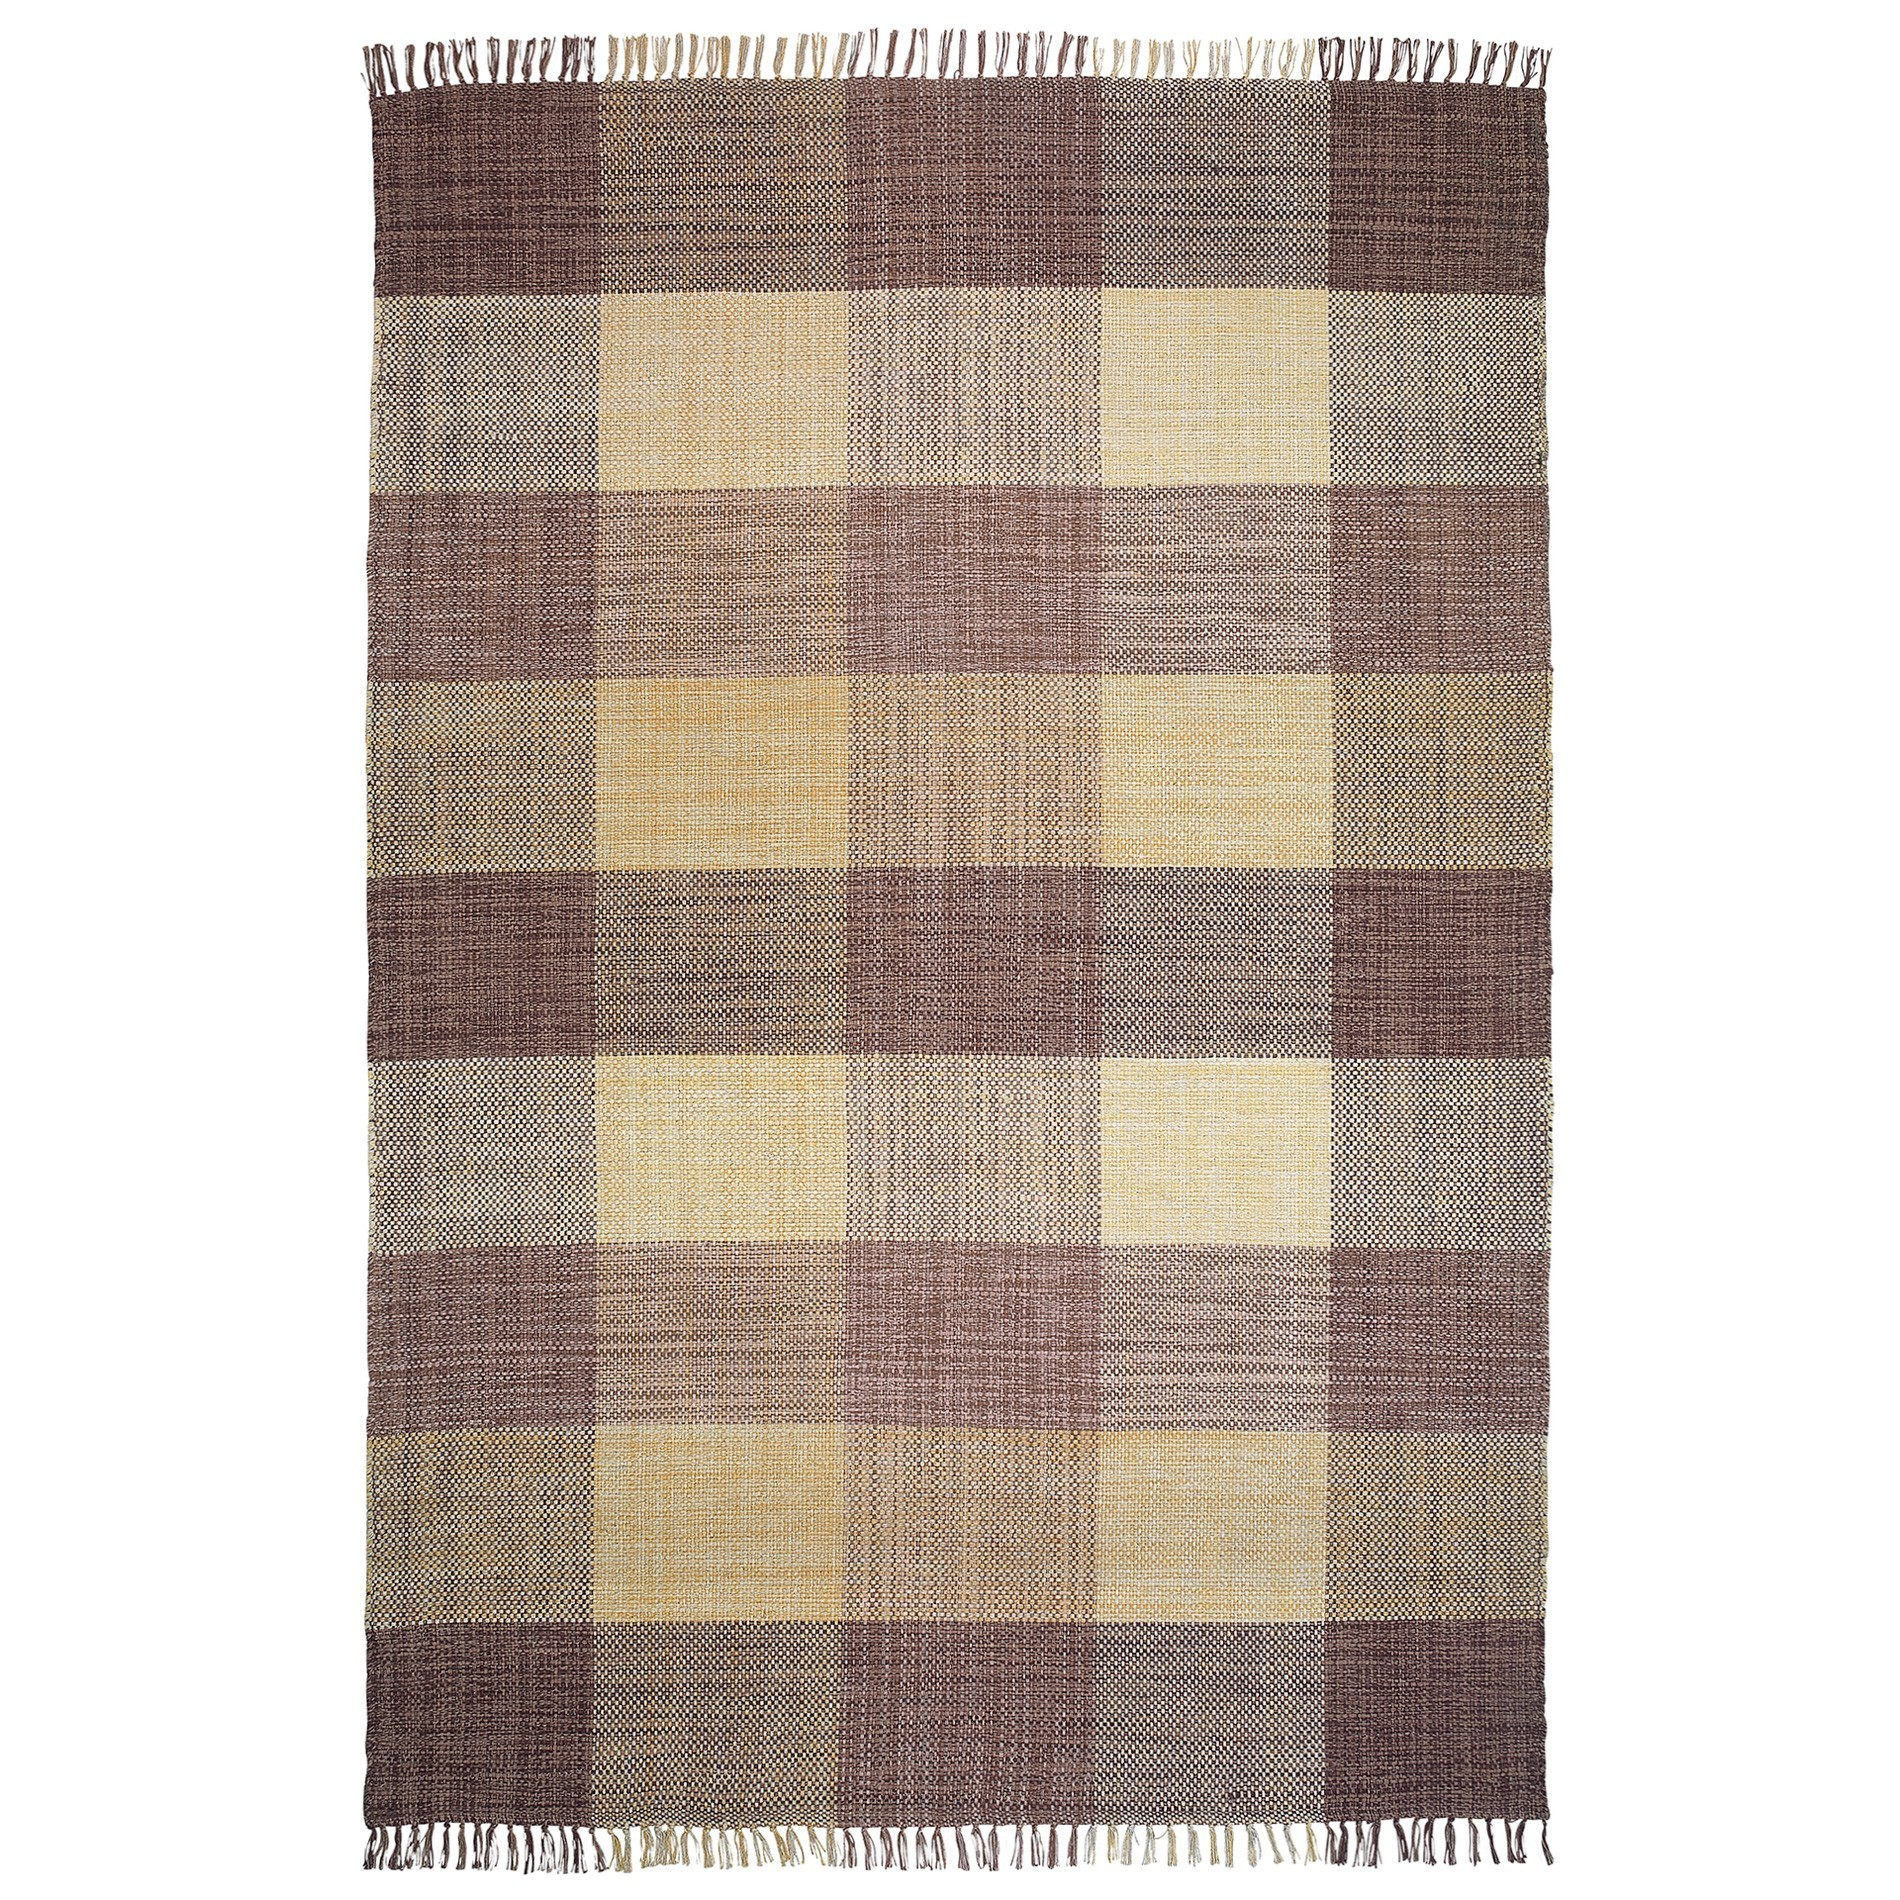 Oxford No.189 Cotton Modern Rug, 290x200cm, Beige